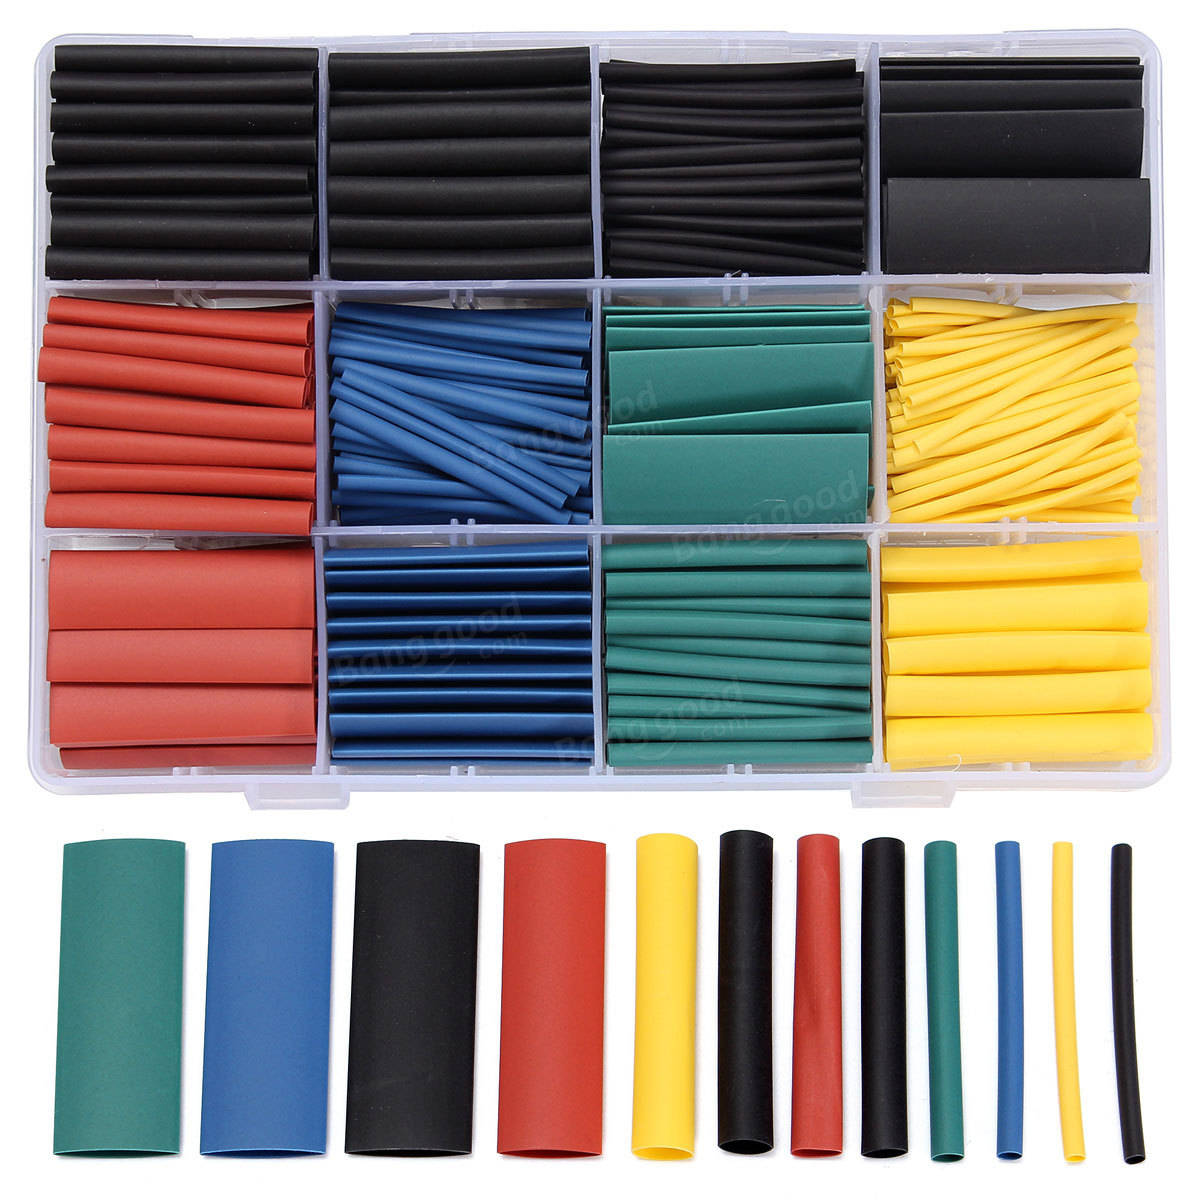 530 pcs halogenfree 21 heat shrink tubing wire cable sleeving wrap wire